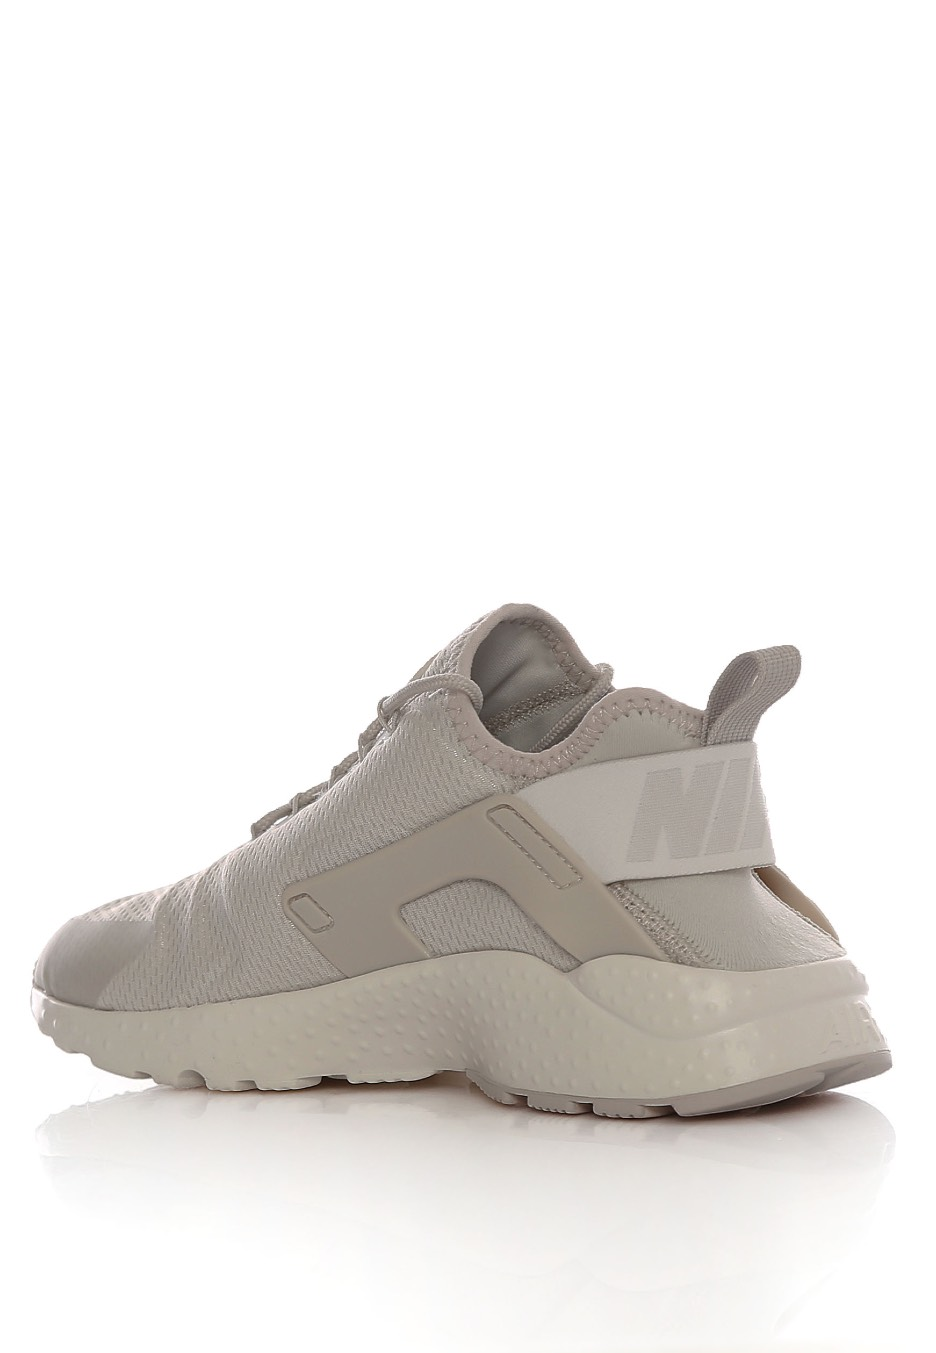 best sneakers 6aeaa b6ffe ... where can i buy nike air huarache run ultra light bone light bone sail  girl shoes